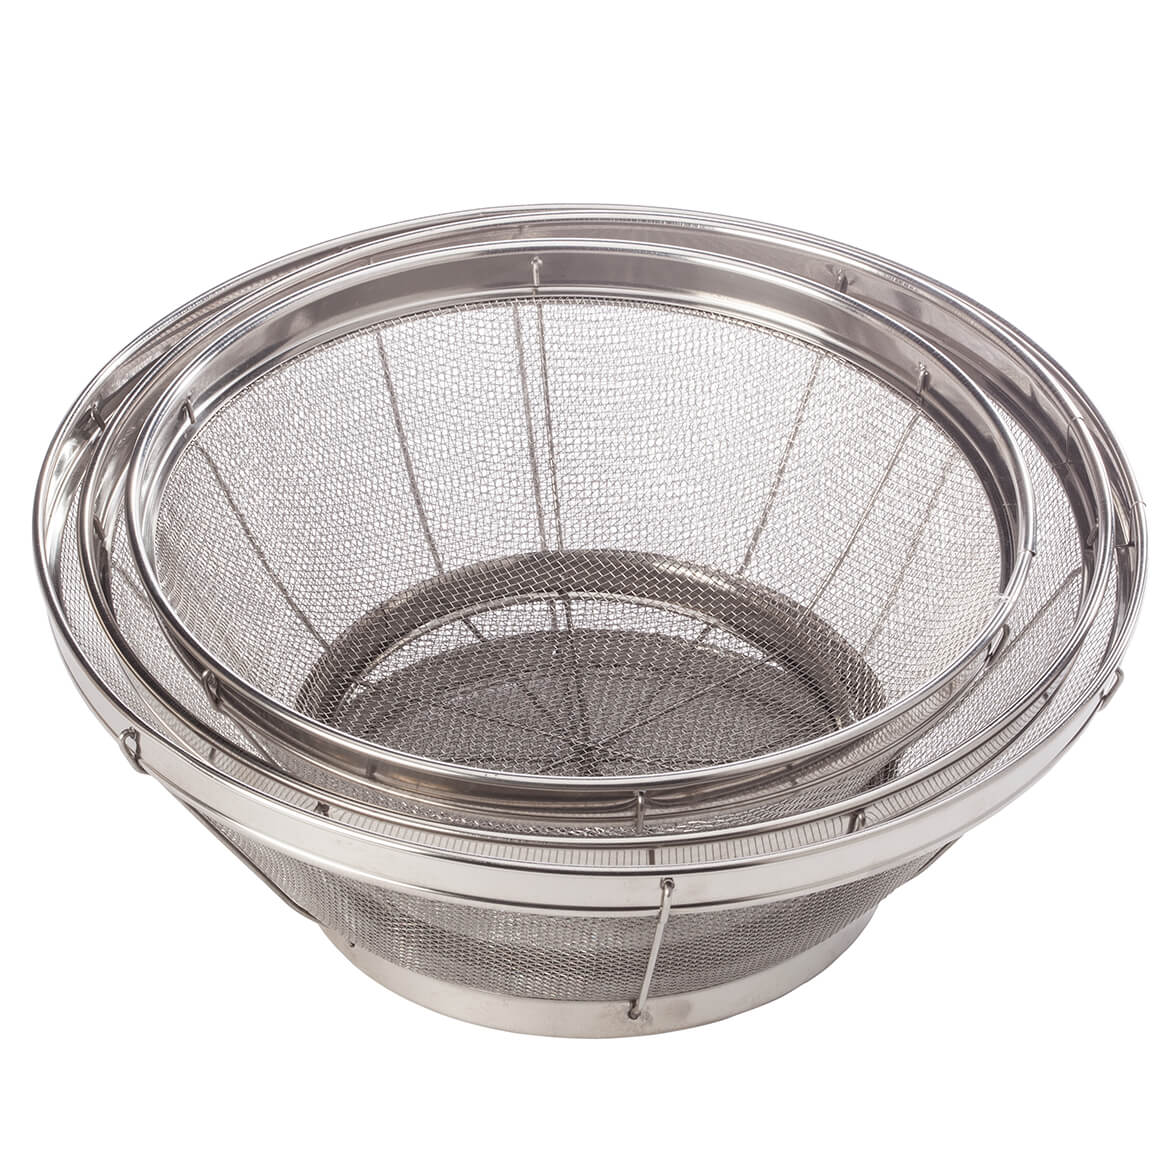 Home Marketplace Set/3 Stainless Steel Mesh Colanders-363793